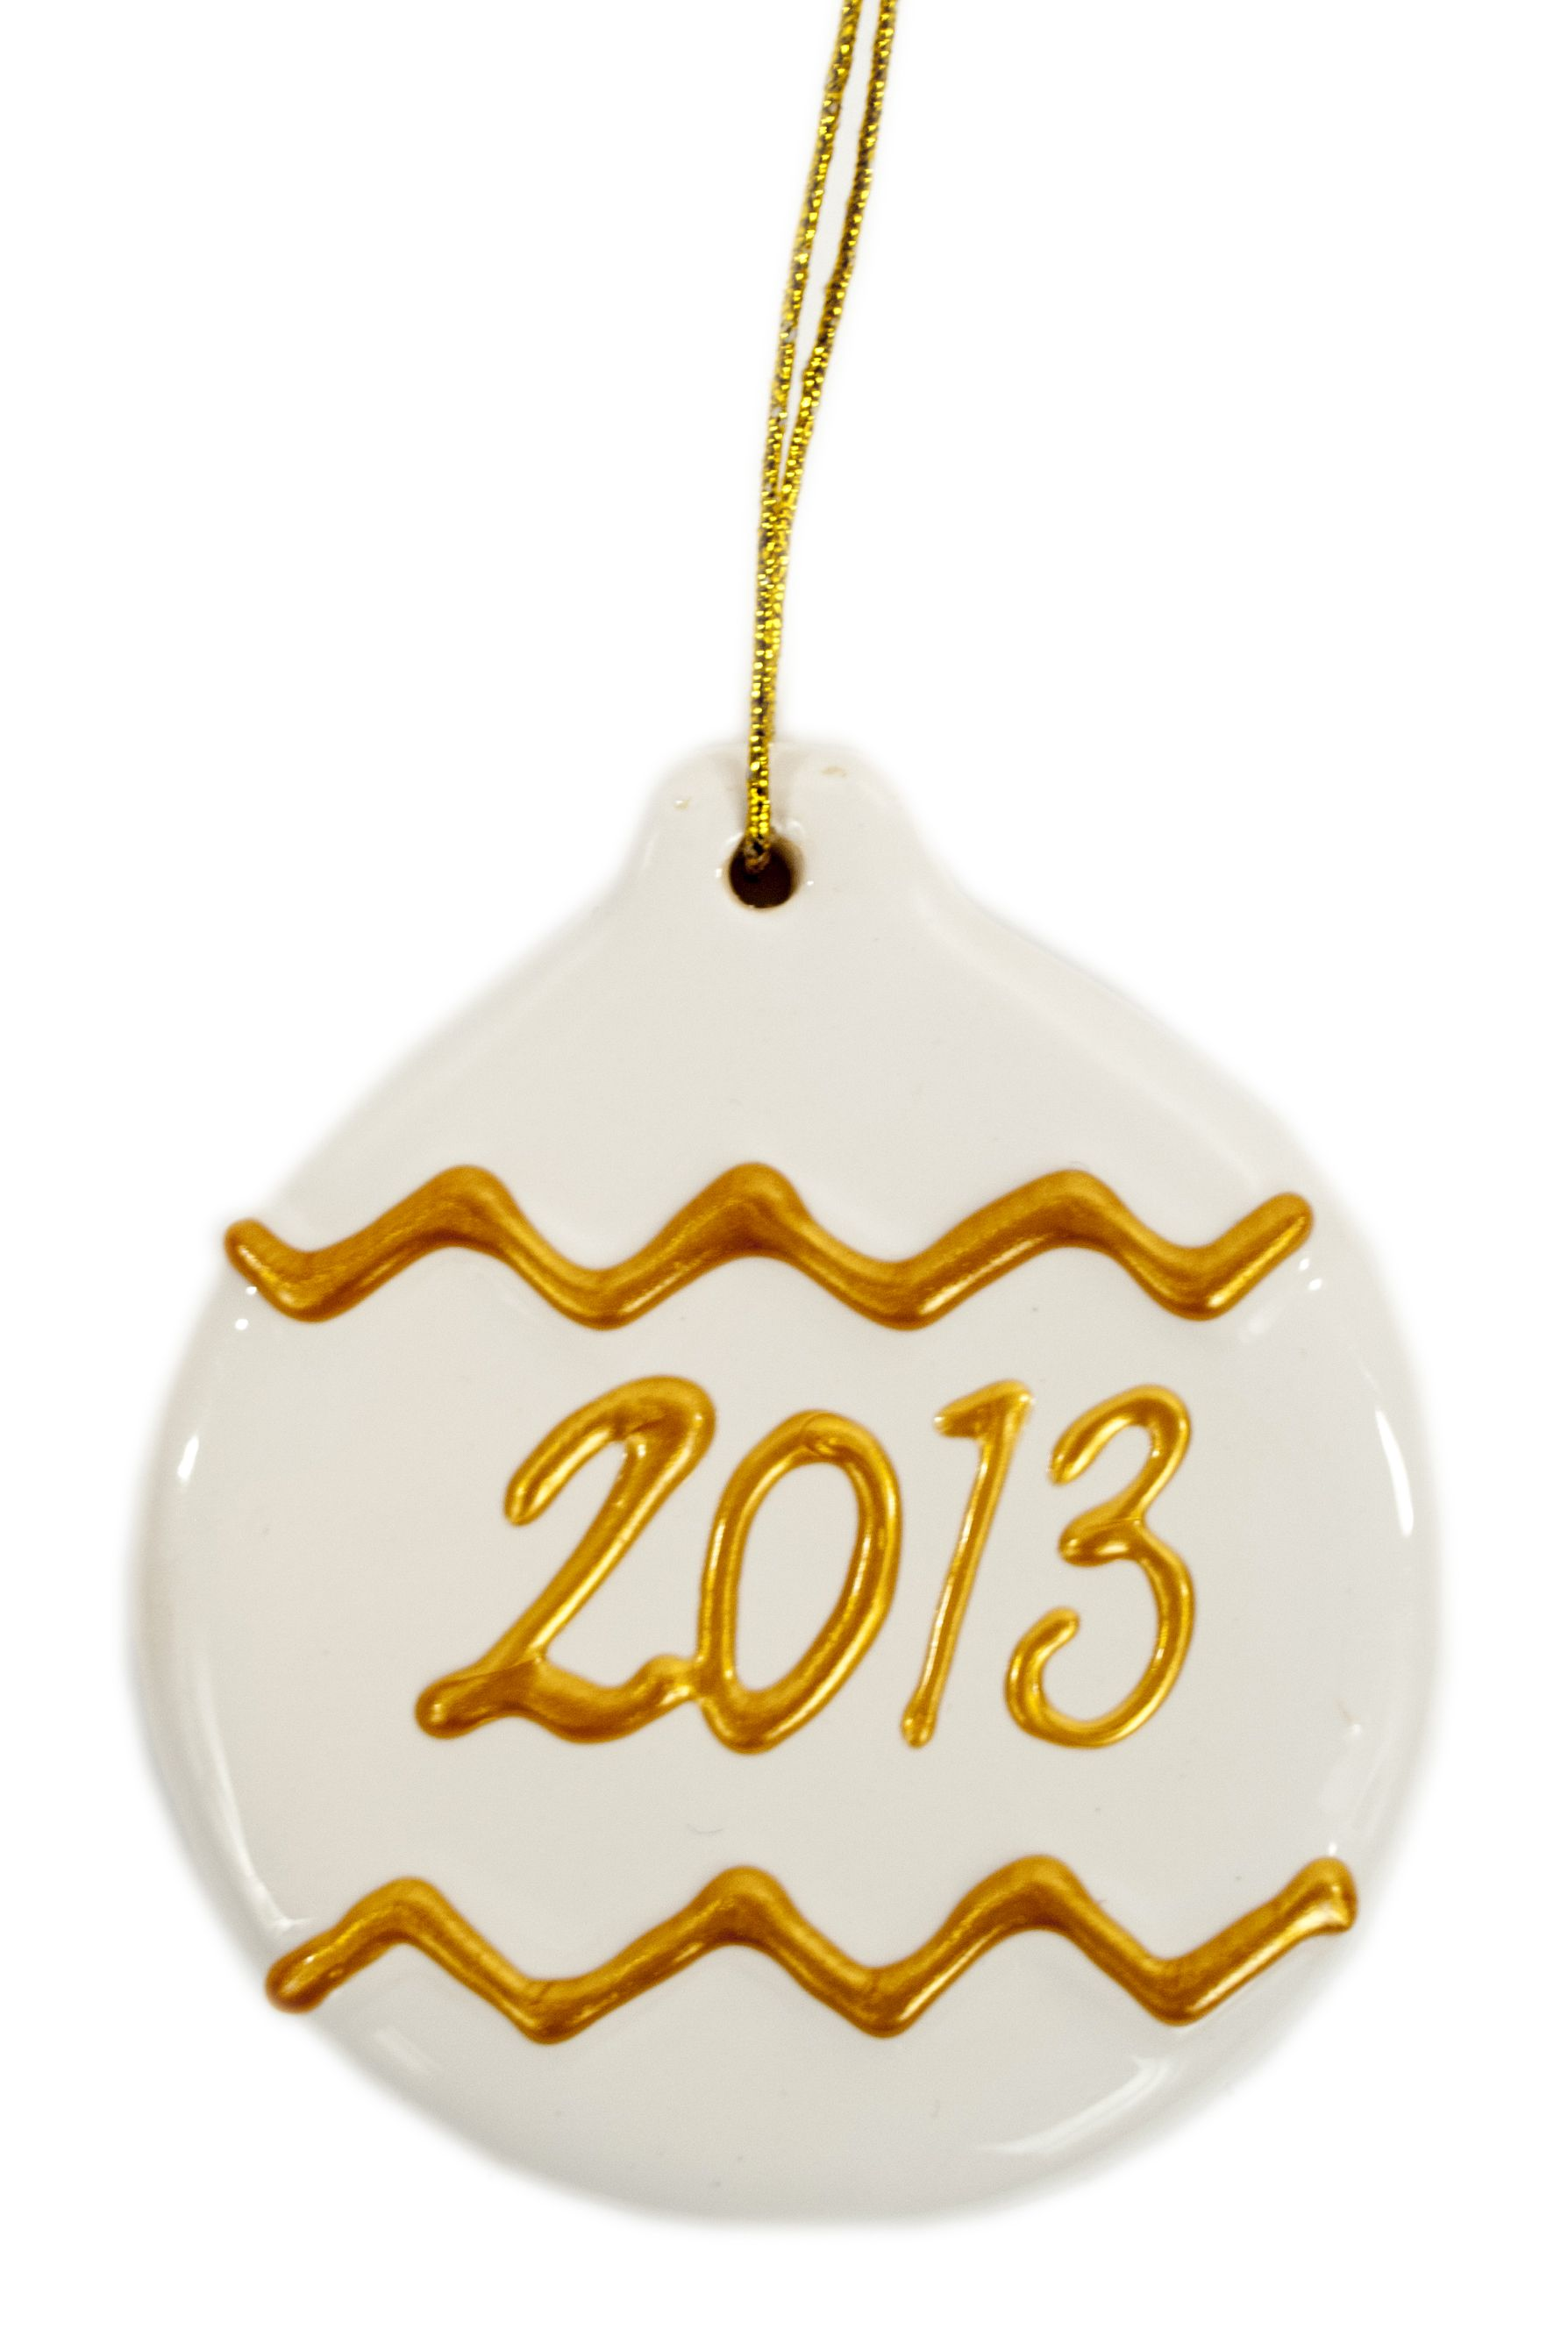 Viva Décor Gold and Ivory Ornament ornaments craft